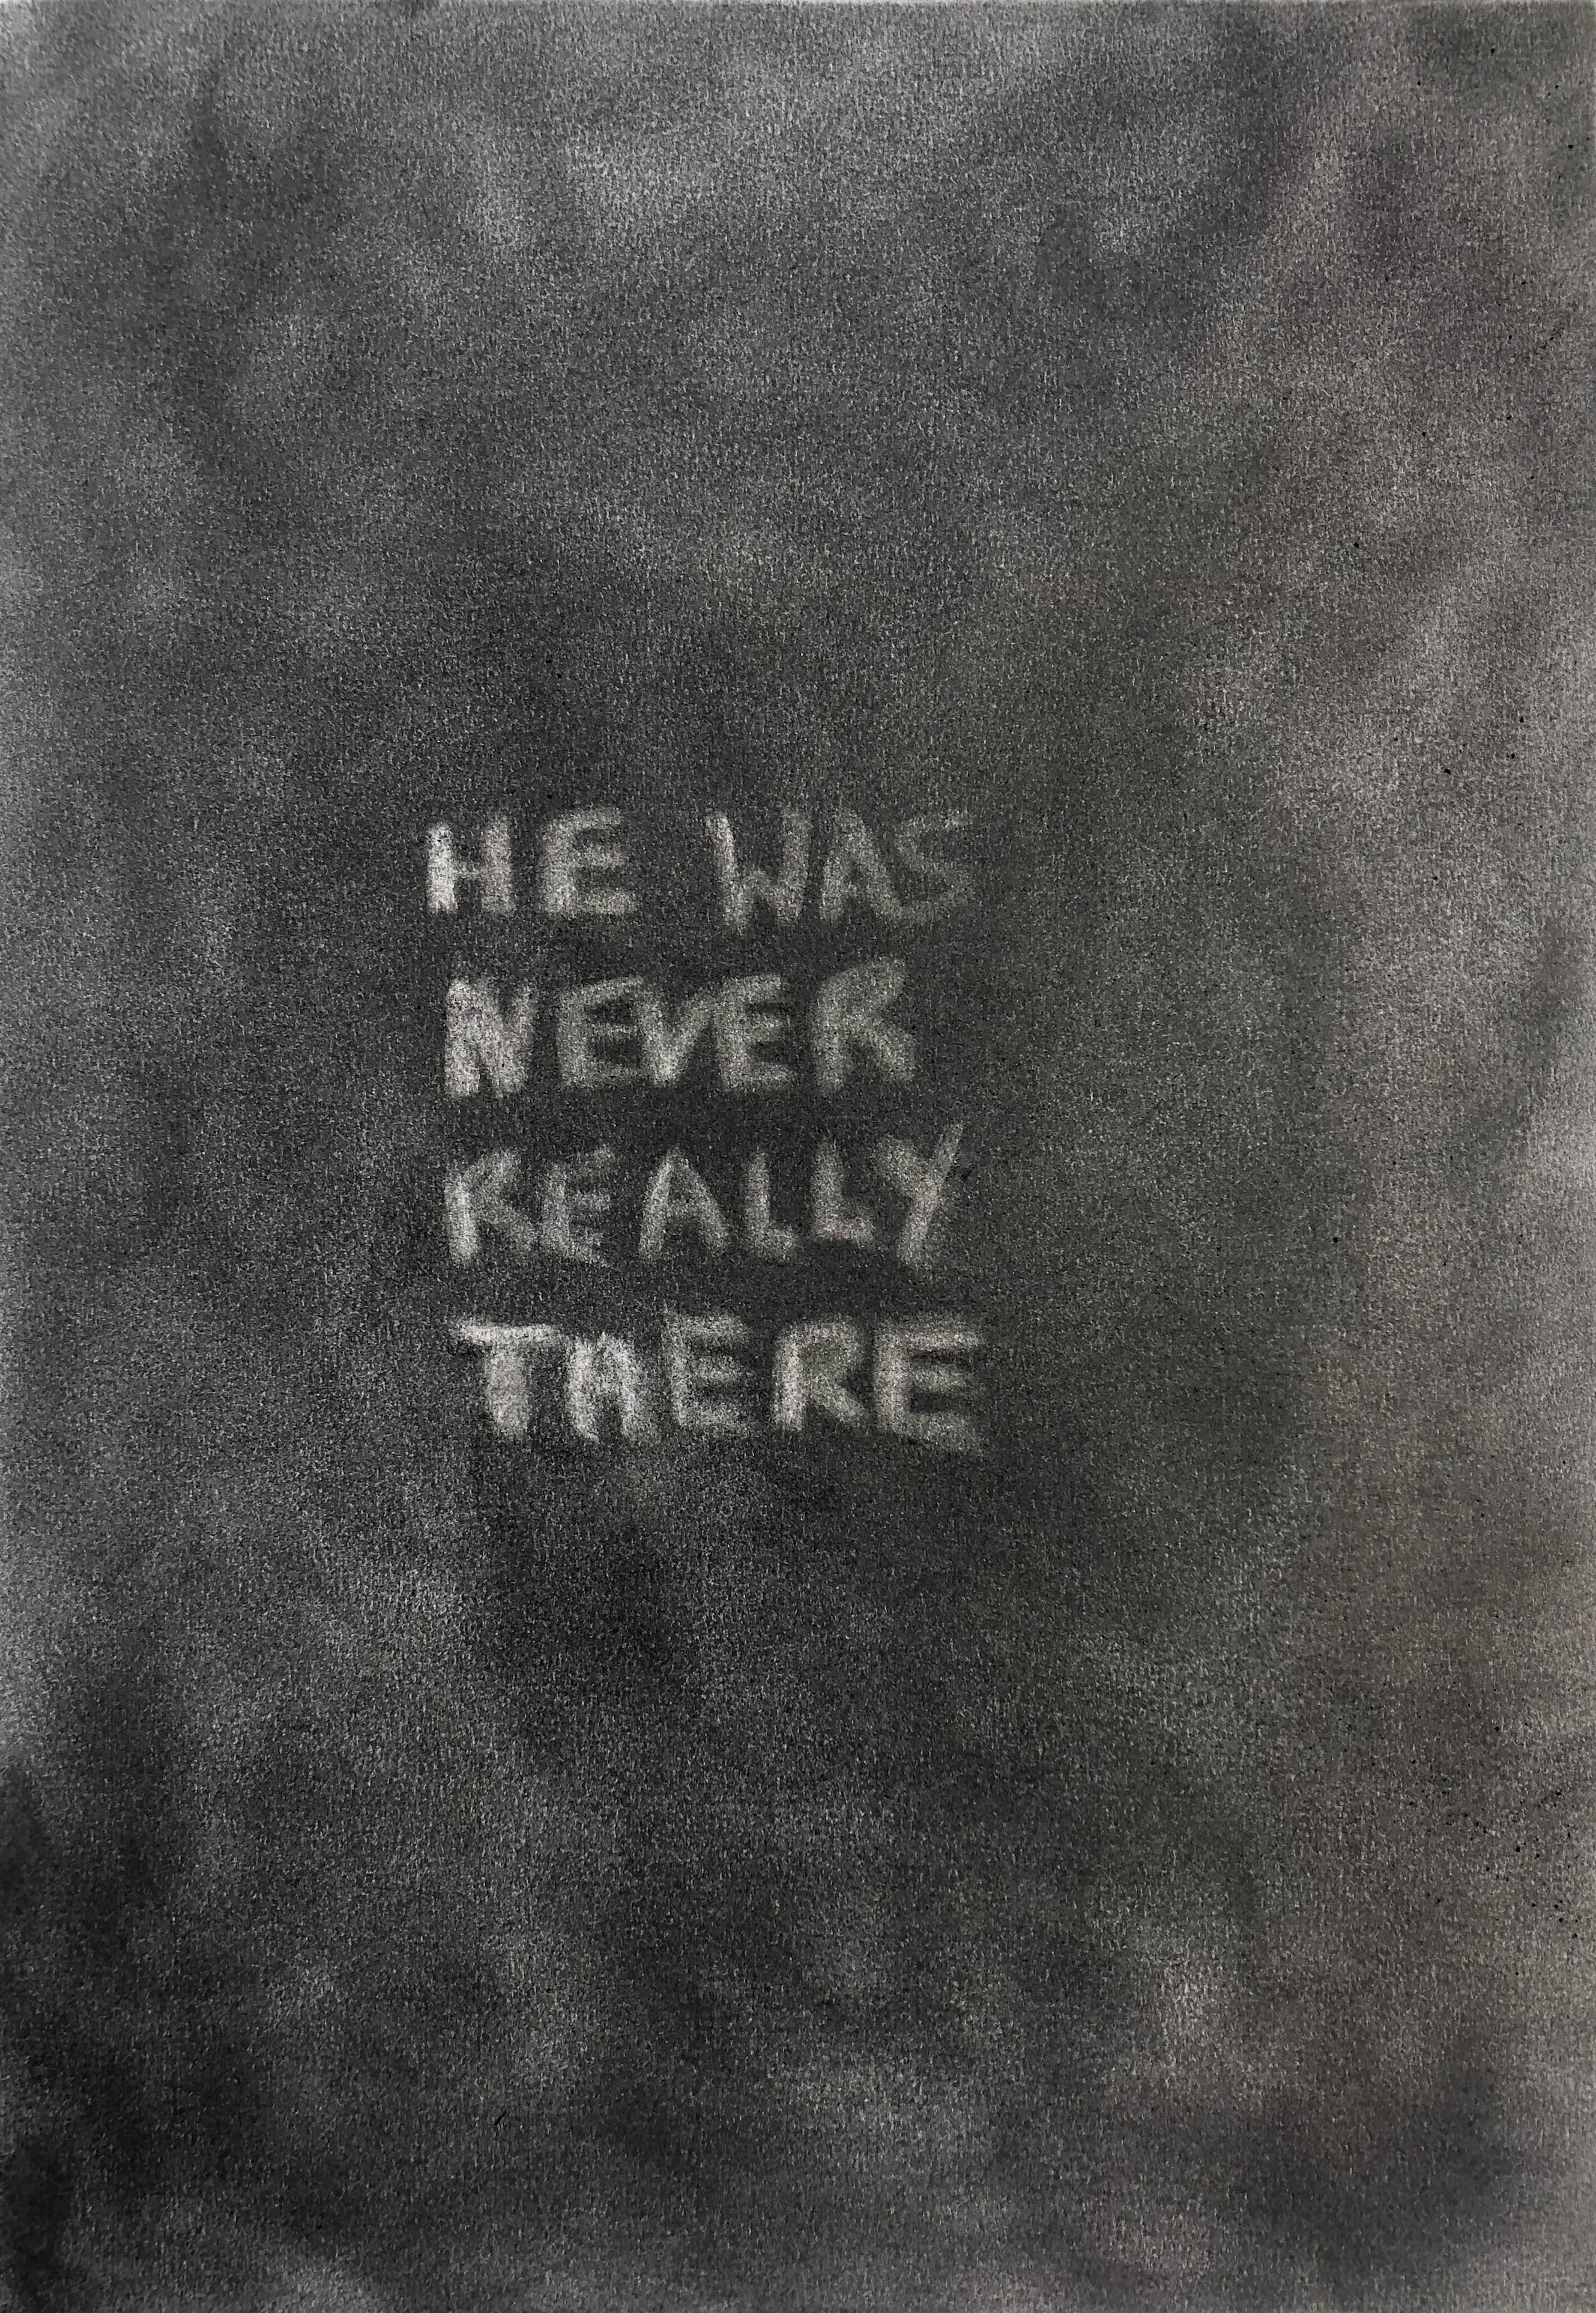 Tim Etchells, Never There, 2020. Charcoal on archival paper. 29.7 x 42 cm.